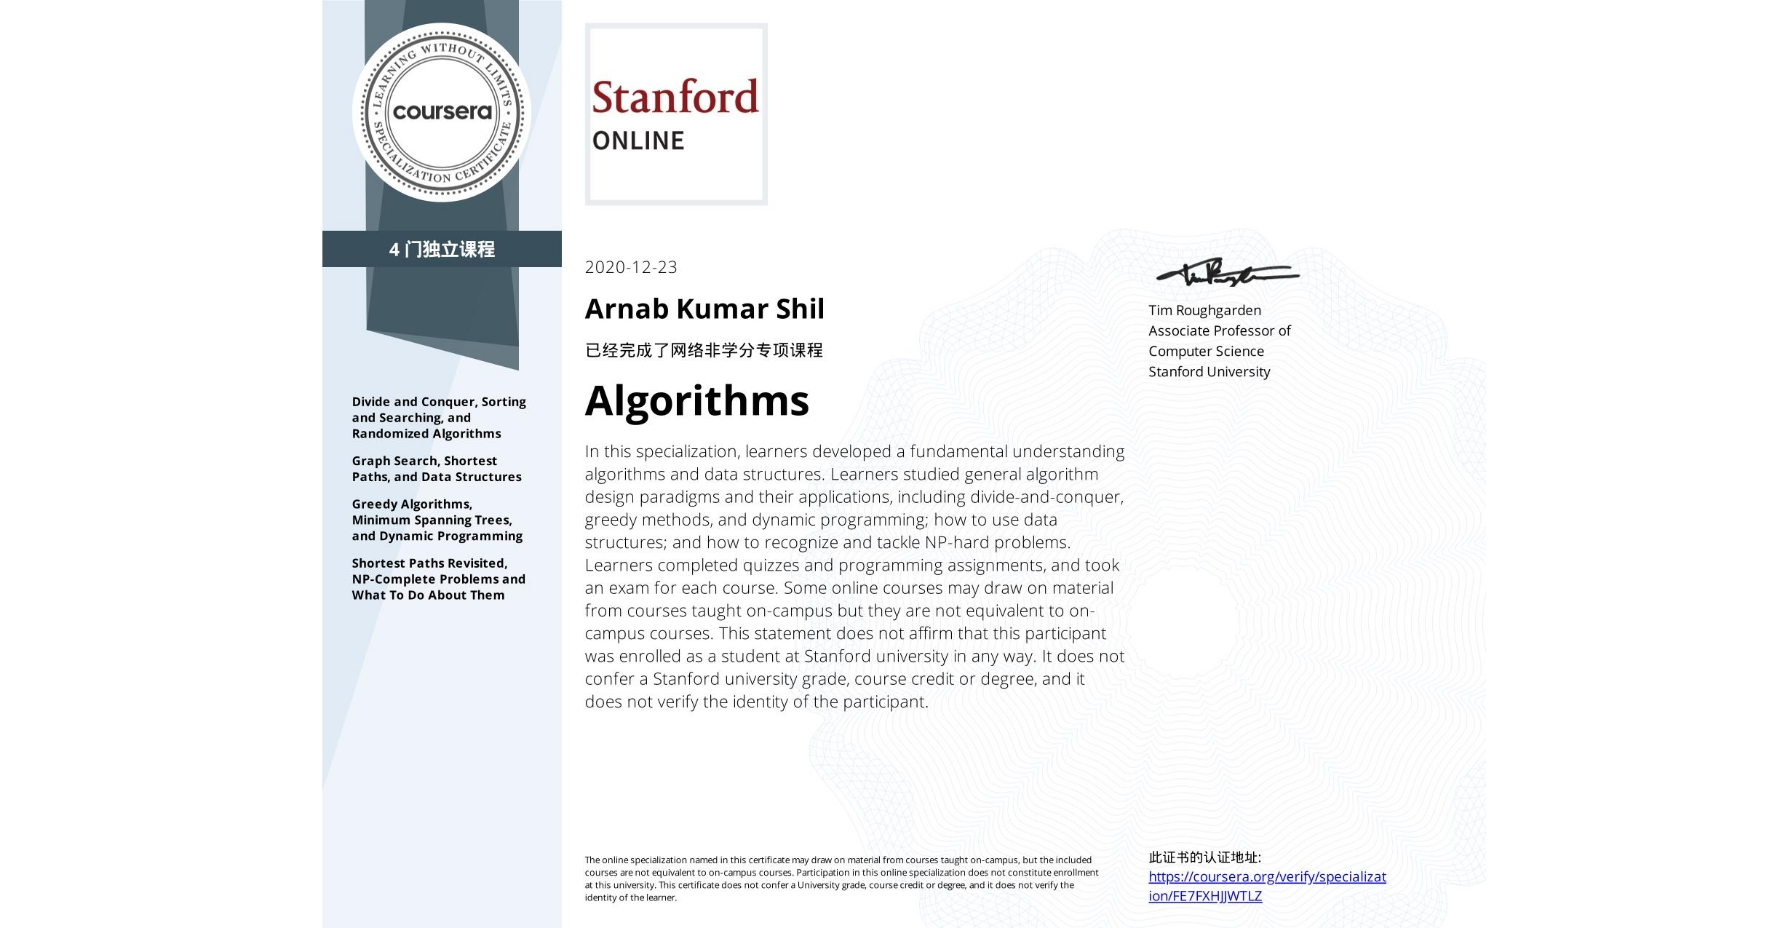 View certificate for Arnab Kumar Shil, Algorithms, offered through Coursera. In this specialization, learners developed a fundamental understanding algorithms and data structures. Learners studied general algorithm design paradigms and their applications, including divide-and-conquer, greedy methods, and dynamic programming; how to use data structures; and how to recognize and tackle NP-hard problems.  Learners completed quizzes and programming assignments, and took an exam for each course.  Some online courses may draw on material from courses taught on-campus but they are not equivalent to on-campus courses. This statement does not affirm that this participant was enrolled as a student at Stanford university in any way. It does not confer a Stanford university grade, course credit or degree, and it does not verify the identity of the participant.